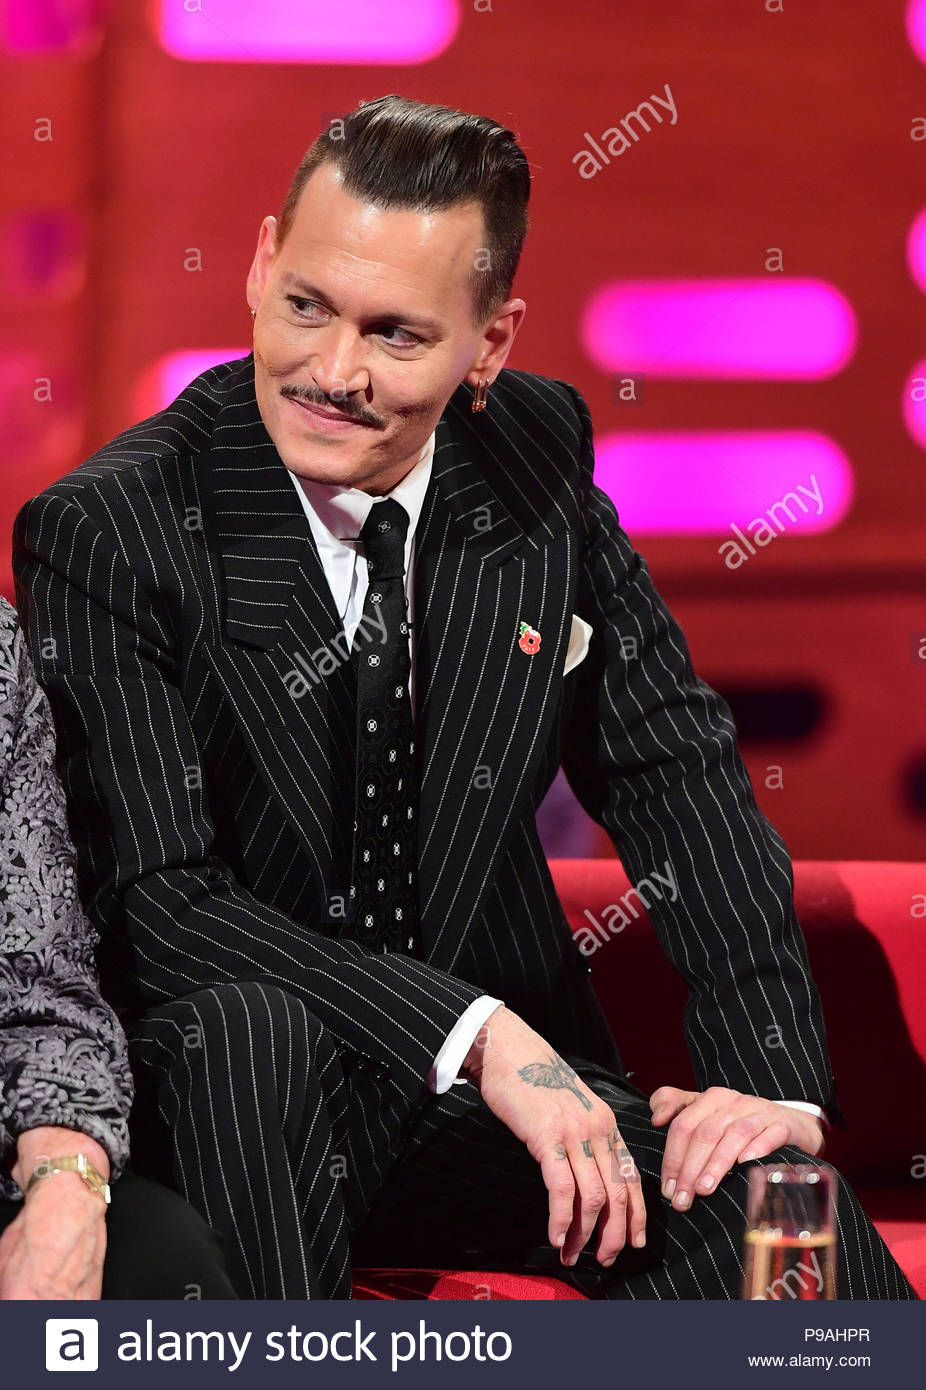 File photo dated 1/11/2017 of Johnny Depp who has settled a lawsuit with his former managers a month before they were due in court. - Stock Image